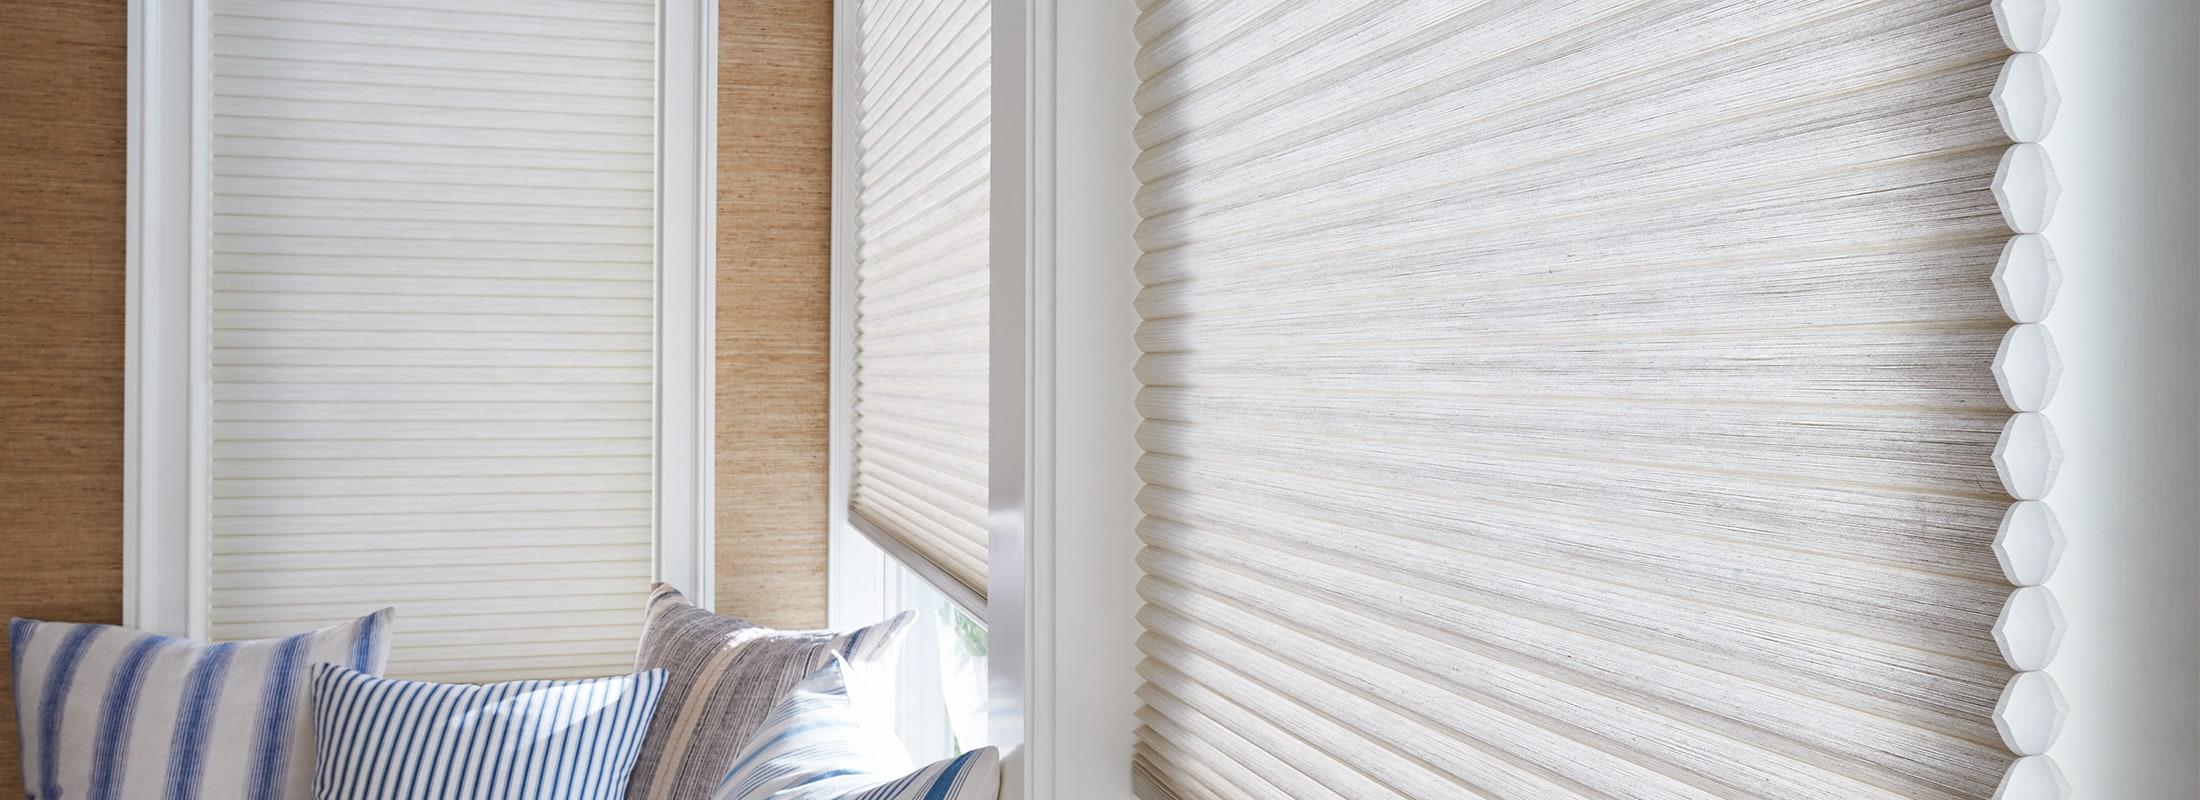 faux common shop in cordless pd blinds allen wireless x wood white actual plantation roth